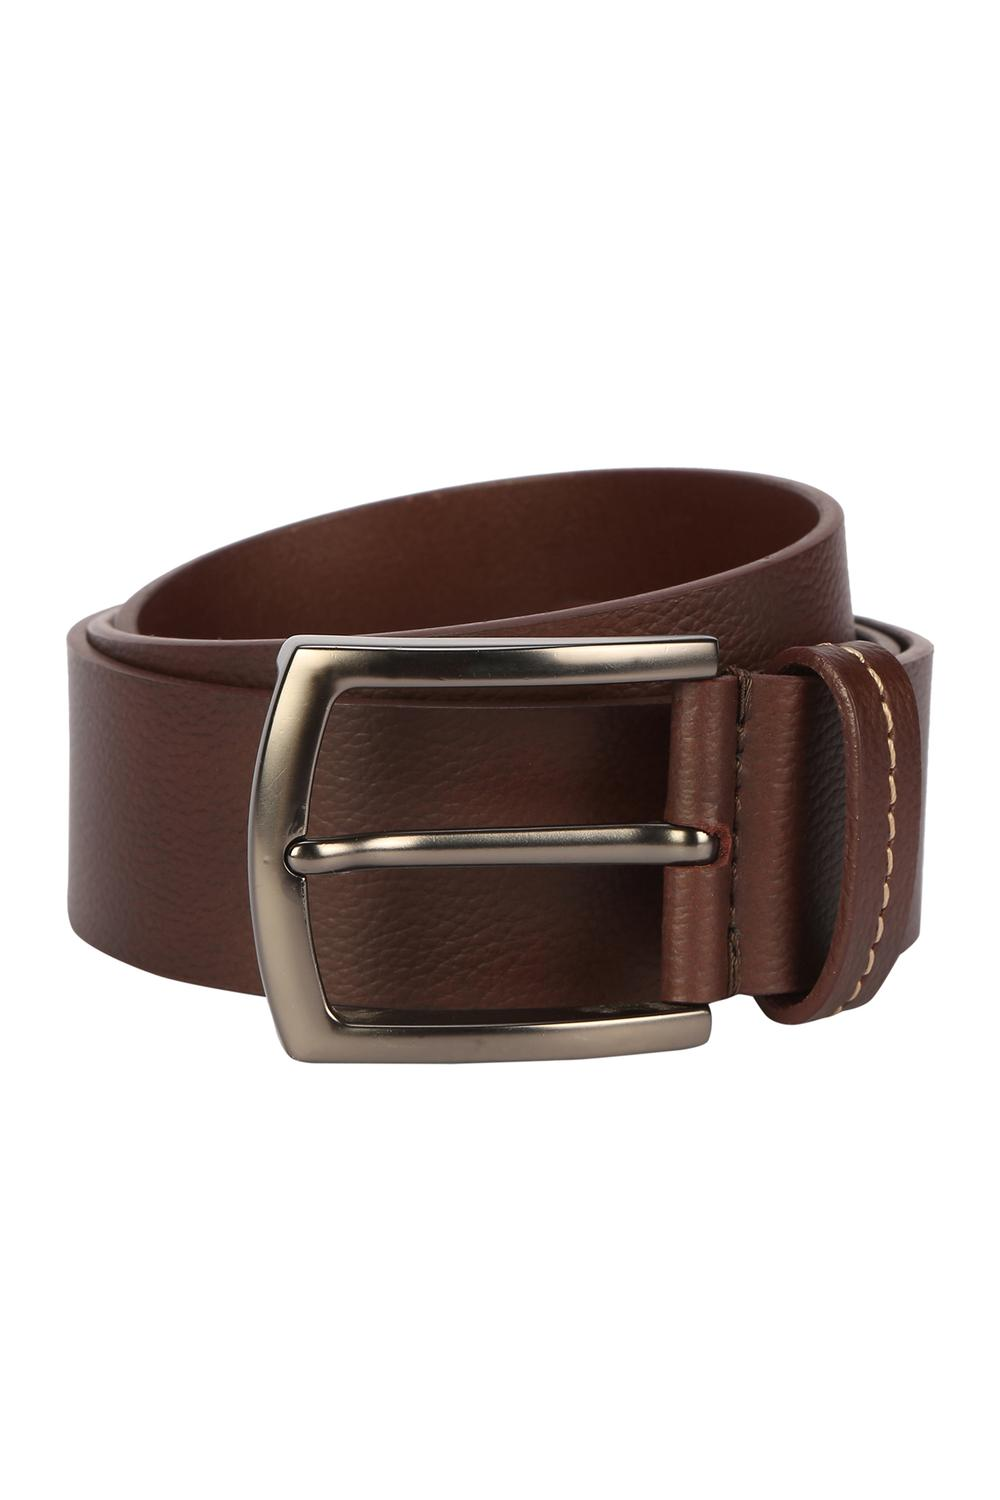 Solly Jeans Co Accessories Allen Solly Brown Belt For Men At